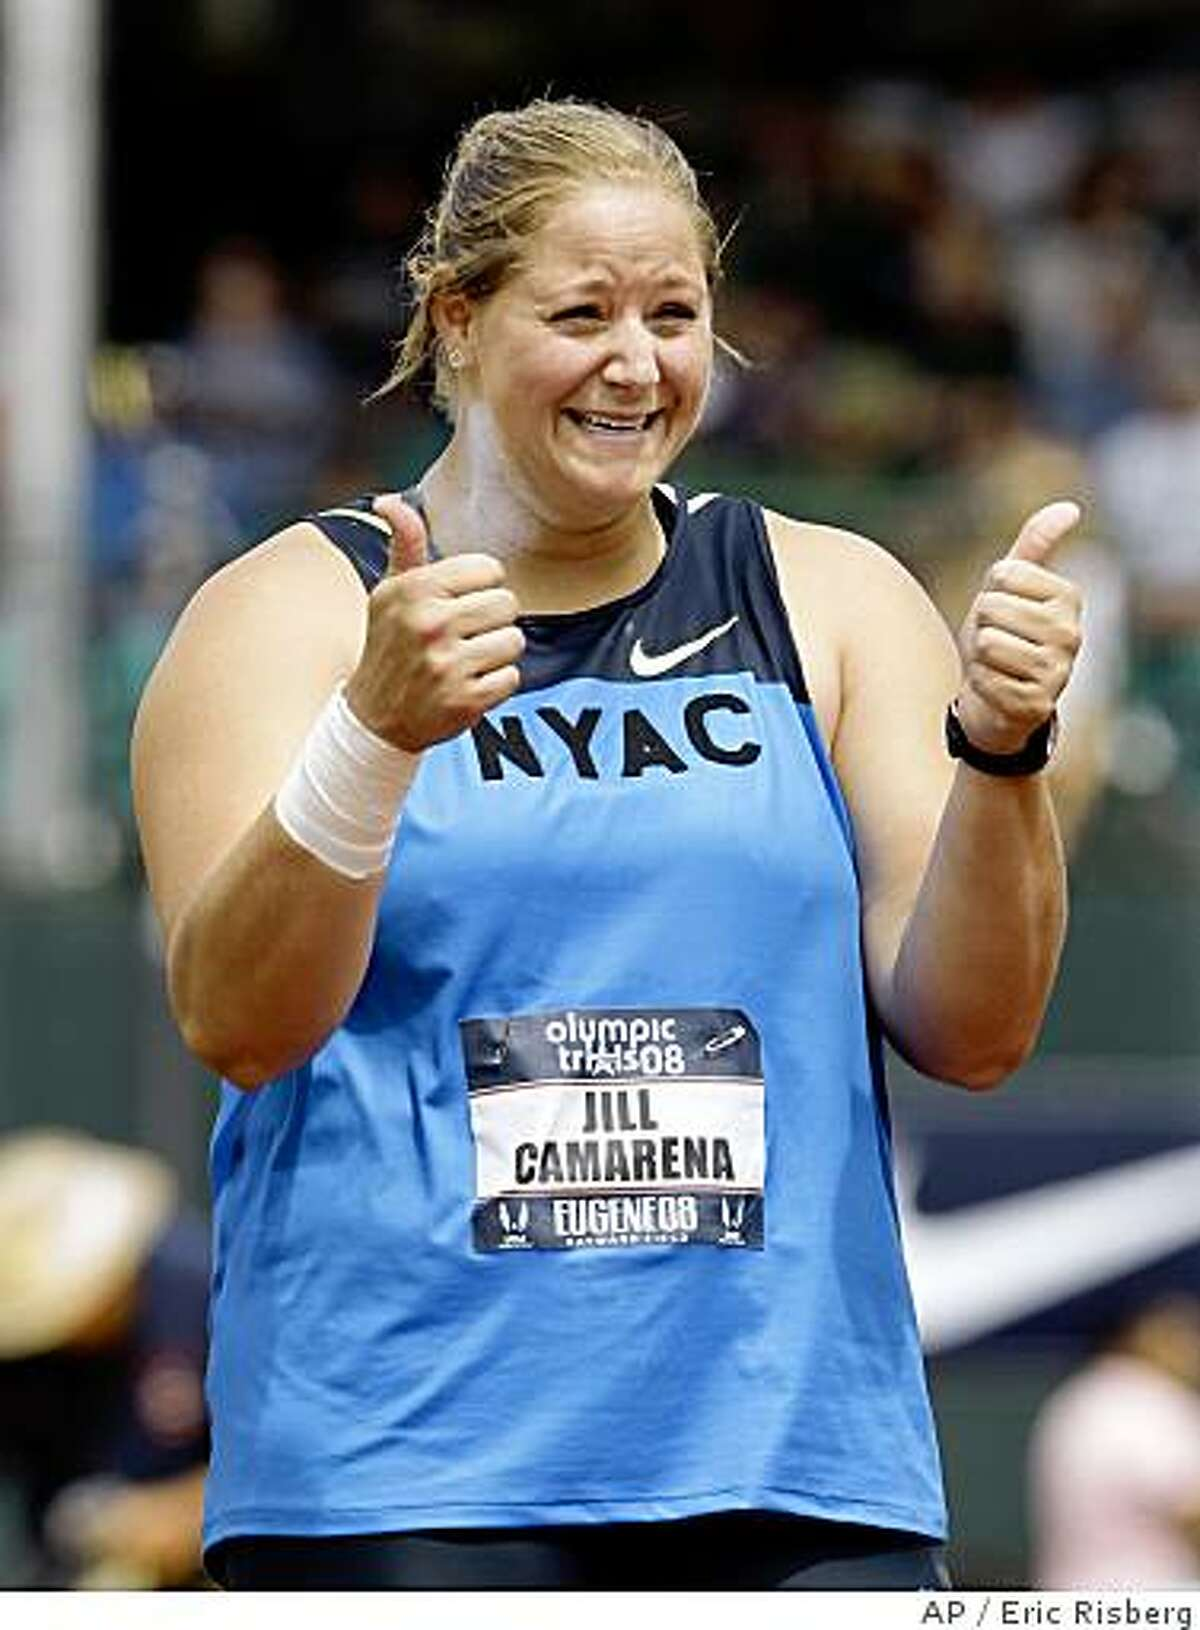 Jillian Camarena reacts after one of her throws during the women's shot put final at the U.S. Olympic Track and Field Trials in Eugene, Ore., Saturday, July 5, 2008. Camarena placed third in the event. (AP Photo/Eric Risberg)